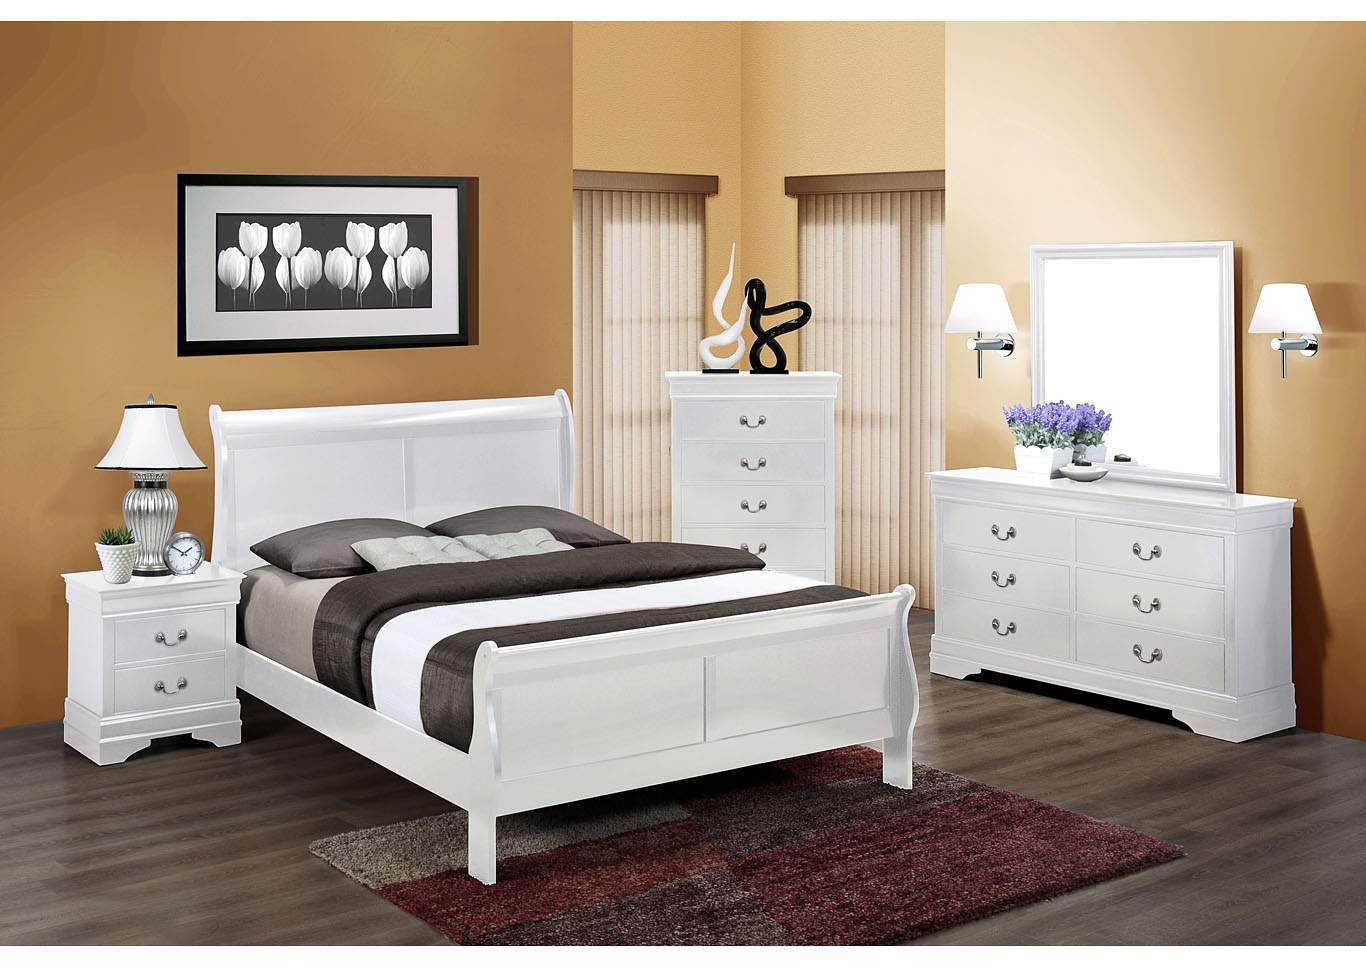 Louis Philip White Queen Sleigh Bed w/6 Drawer Dresser, Mirror and 5 Drawer Chest,Crown Mark